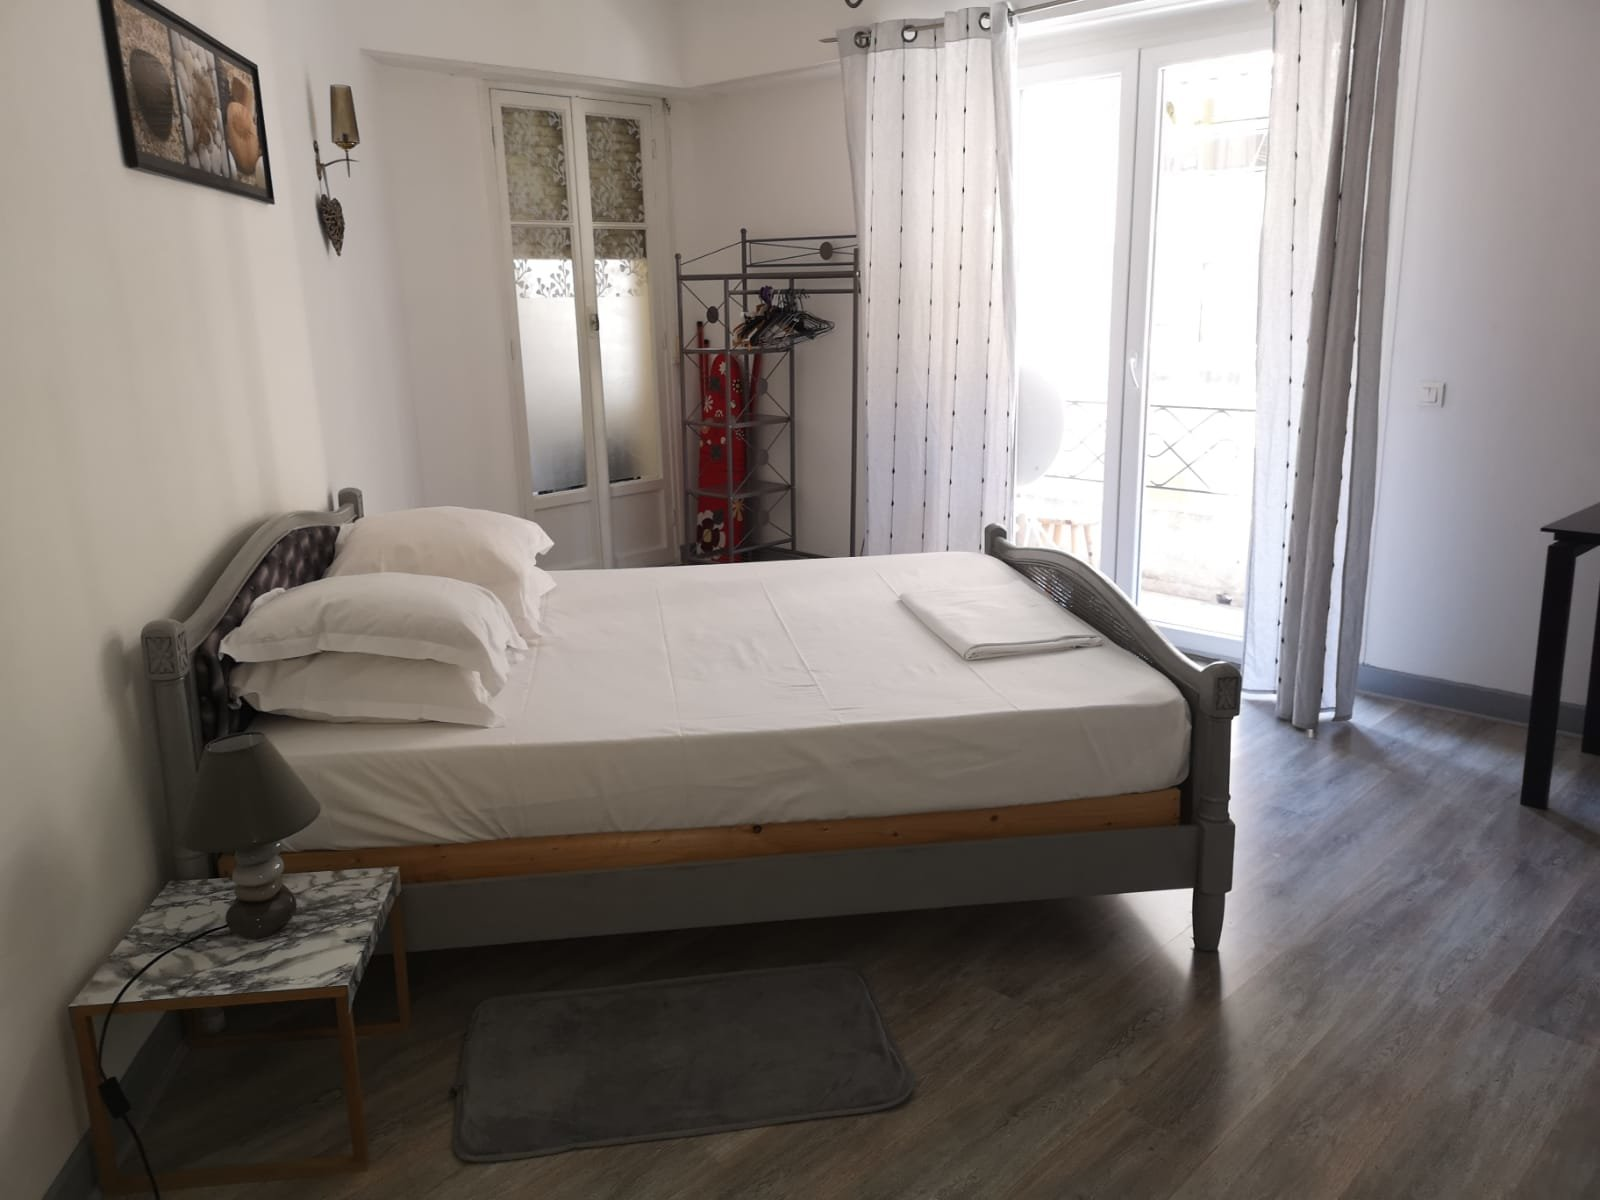 3 ROOMS IN QUIET NEAR MALAUSSENA